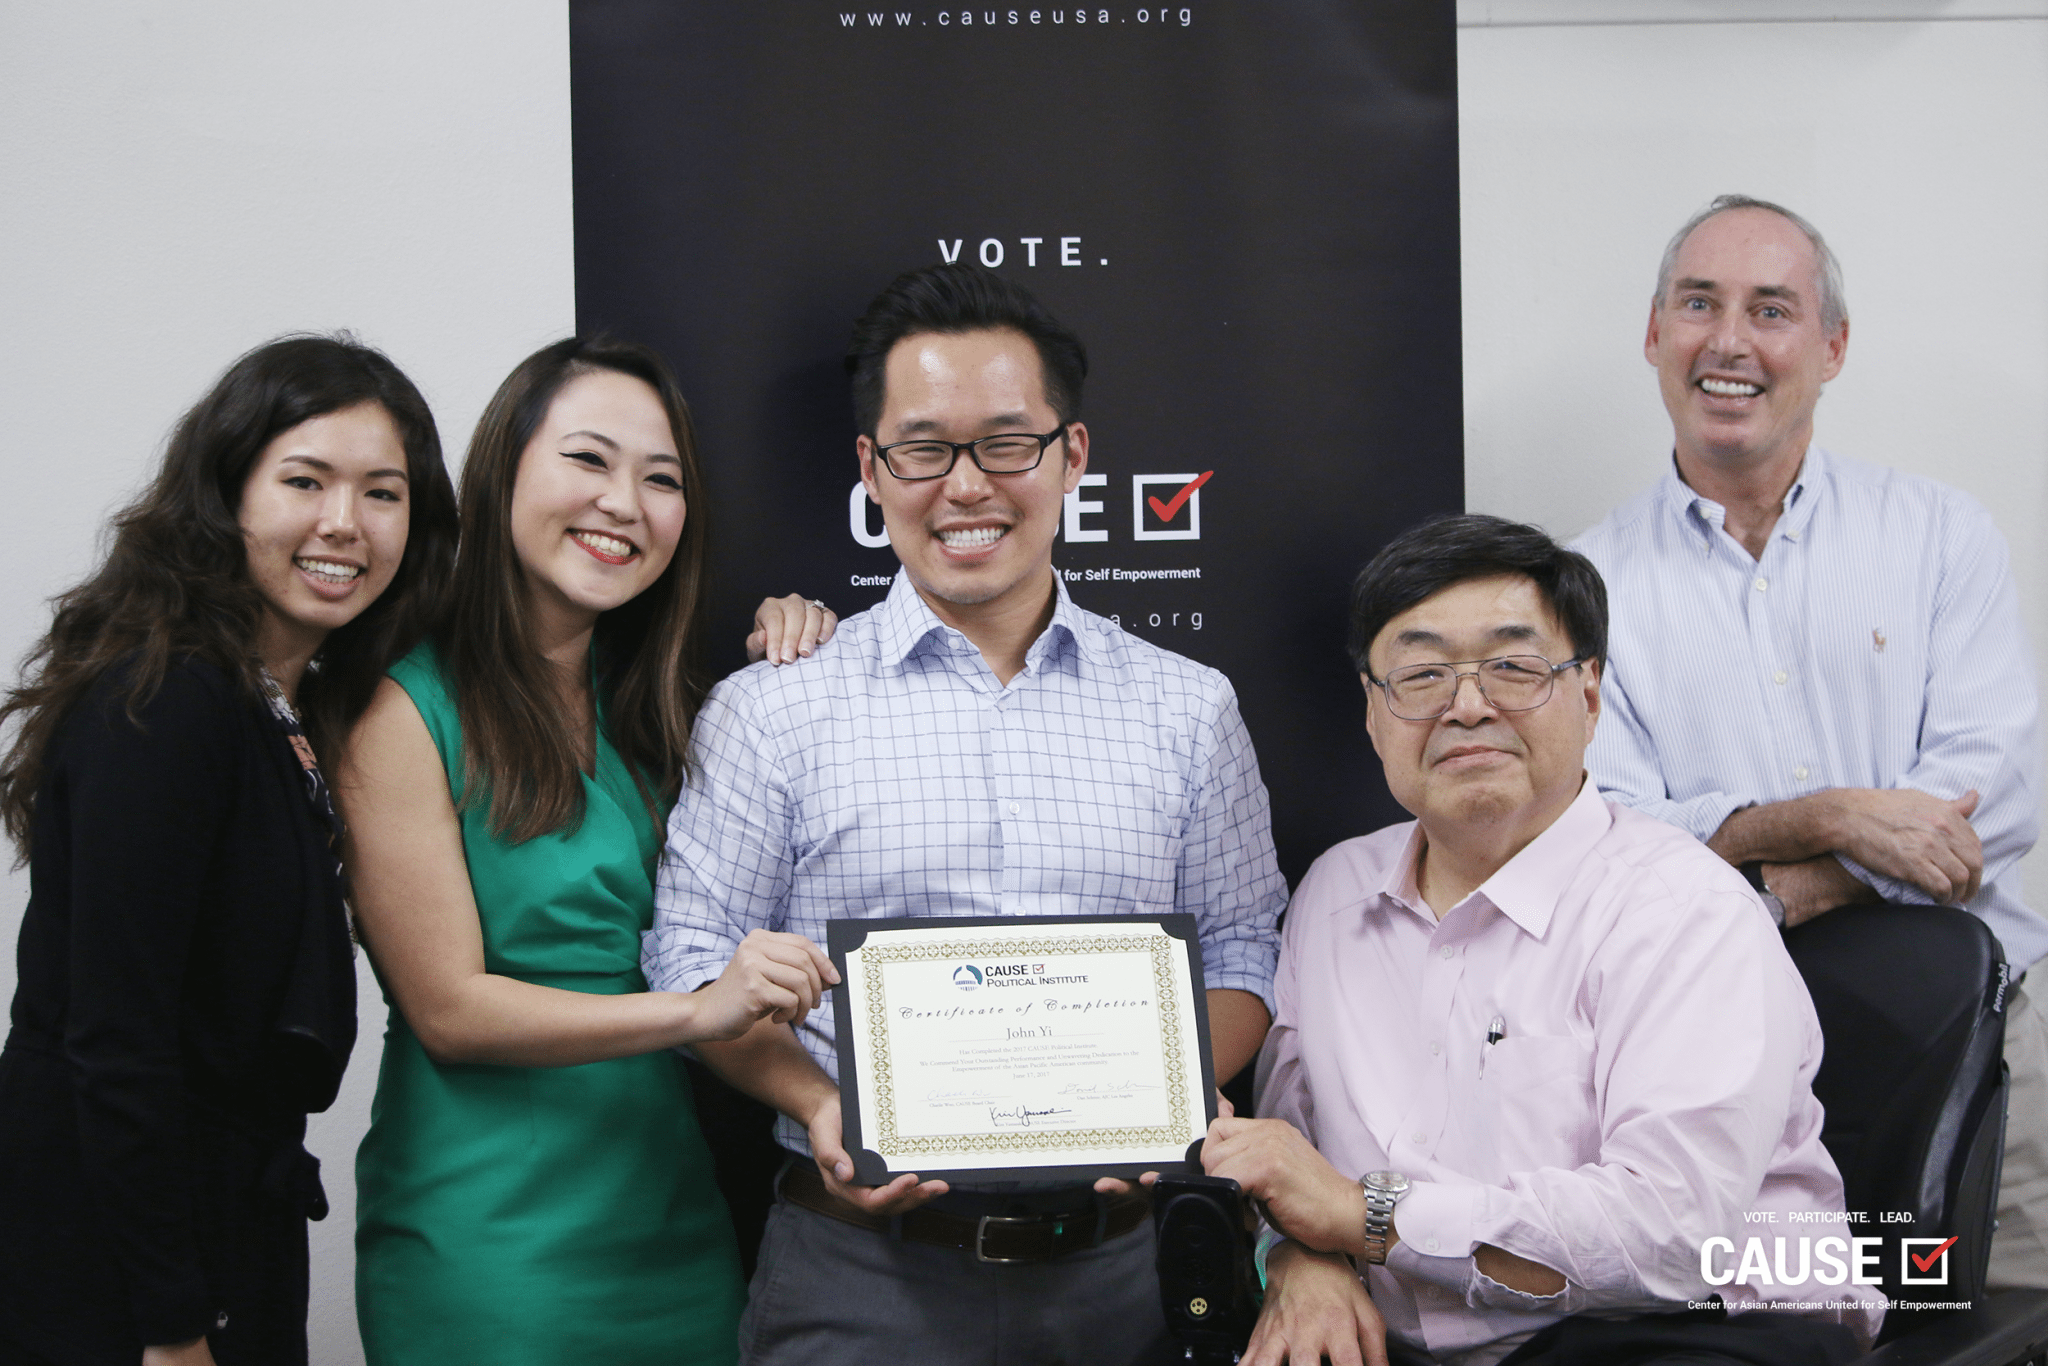 John Yi accepts his program completion certificate from CAUSE